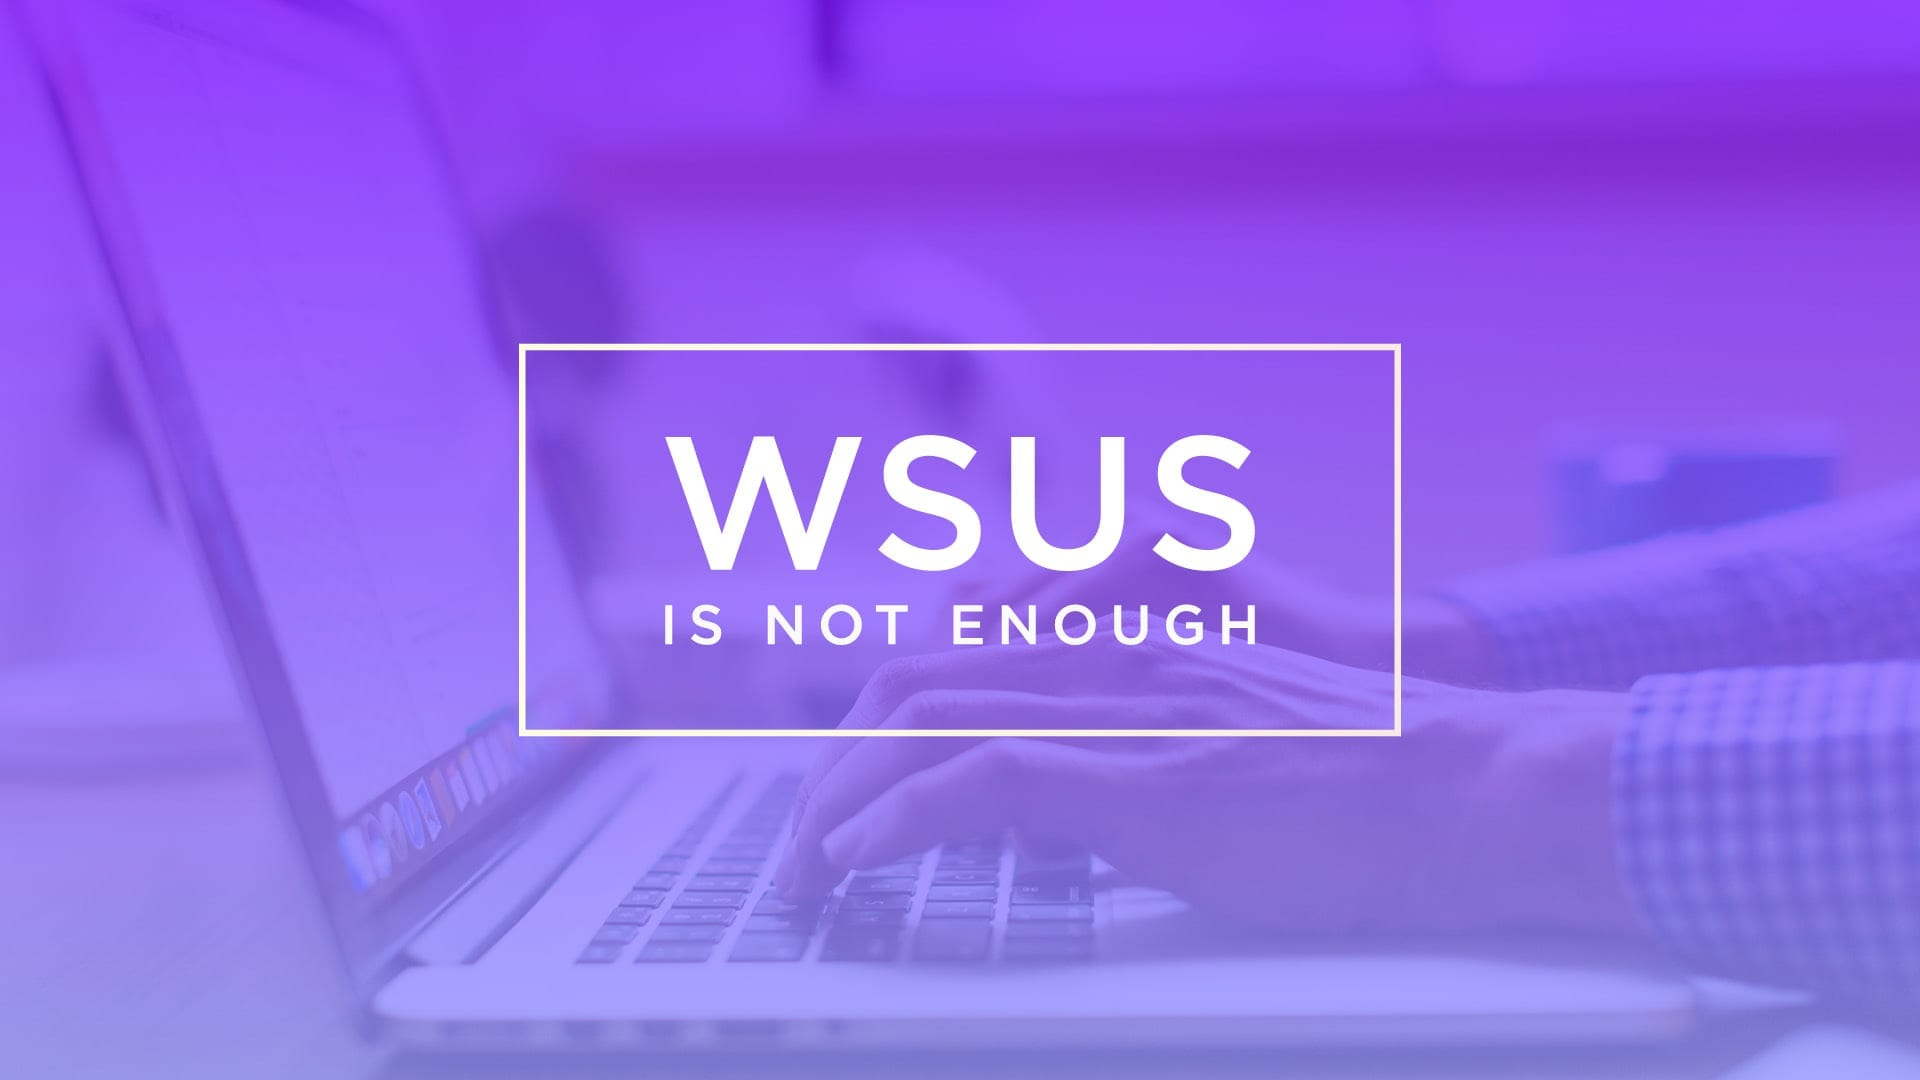 Microsoft WSUS is Not Enough